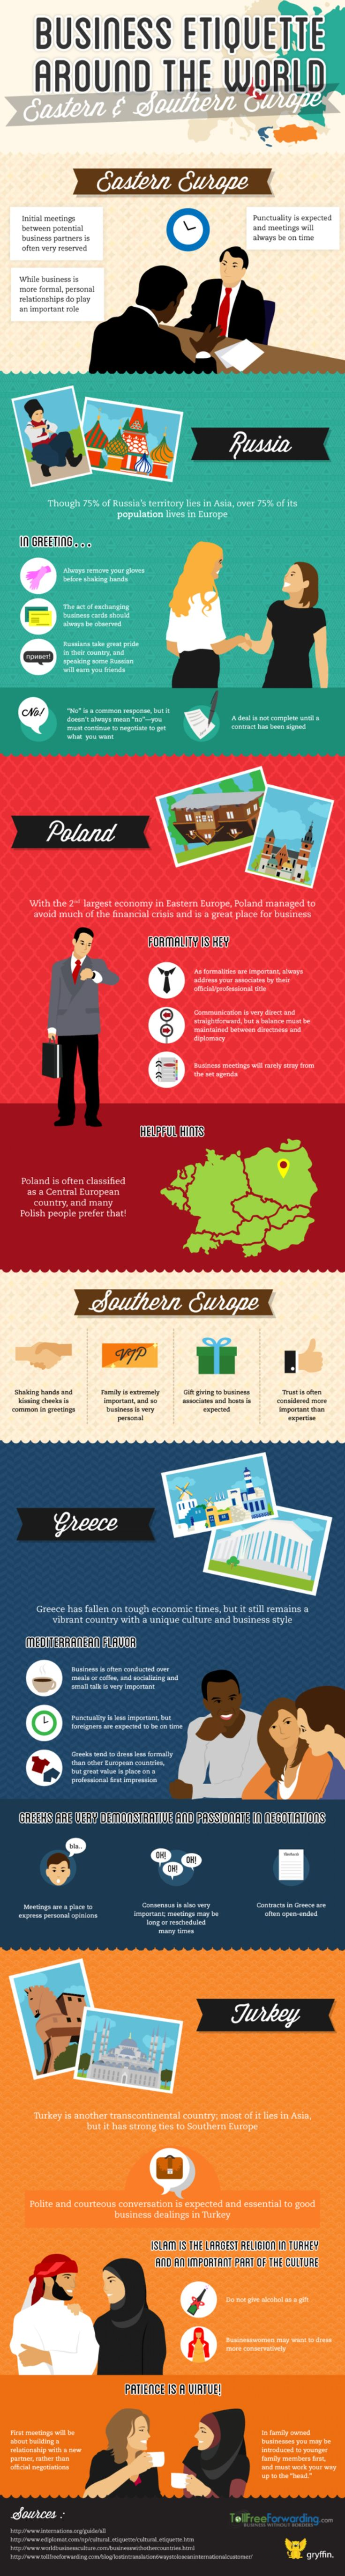 Business Etiquette: Eastern & Southern Europe